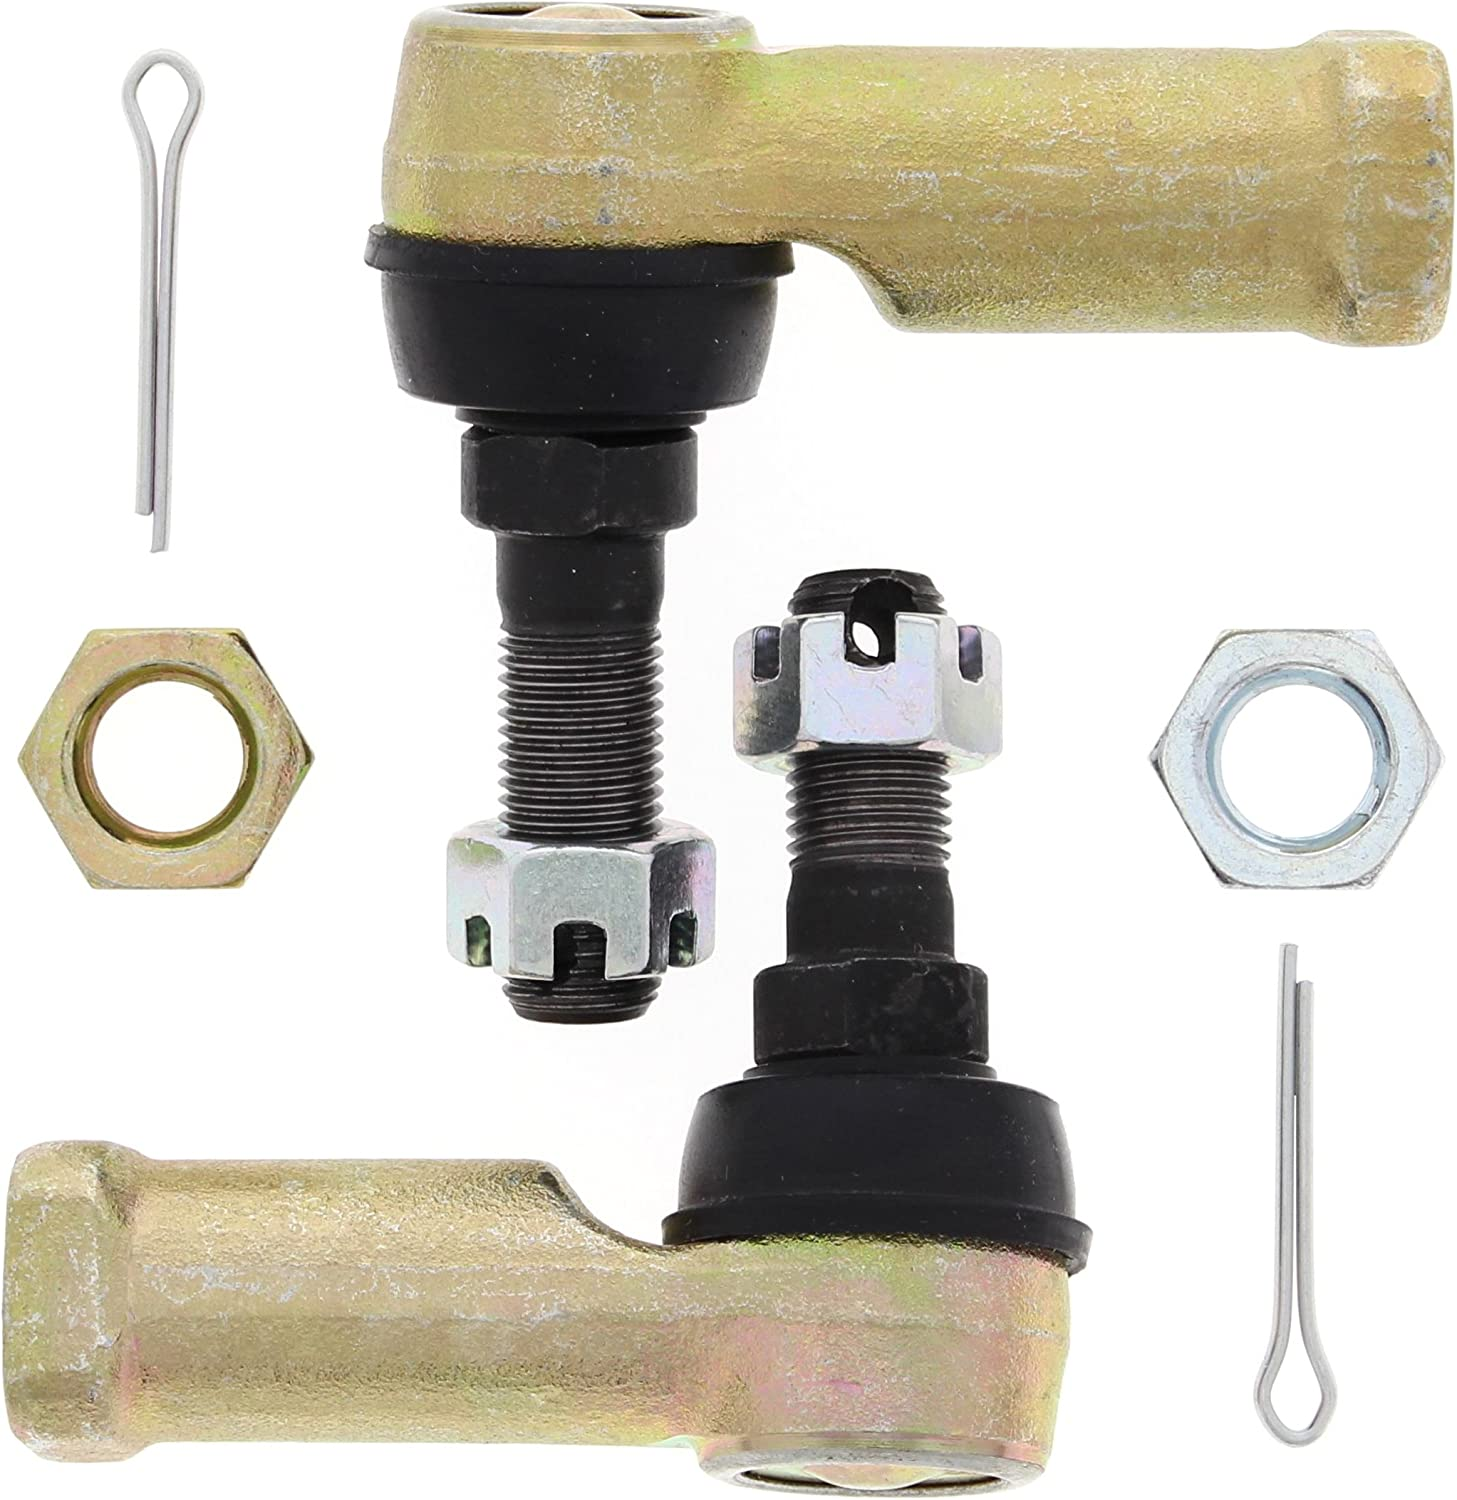 2 Sets of TIE ROD END KIT FITS BOMBARDIER CAN-AM OUTLANDER 800 4x4 STD 2006 2007